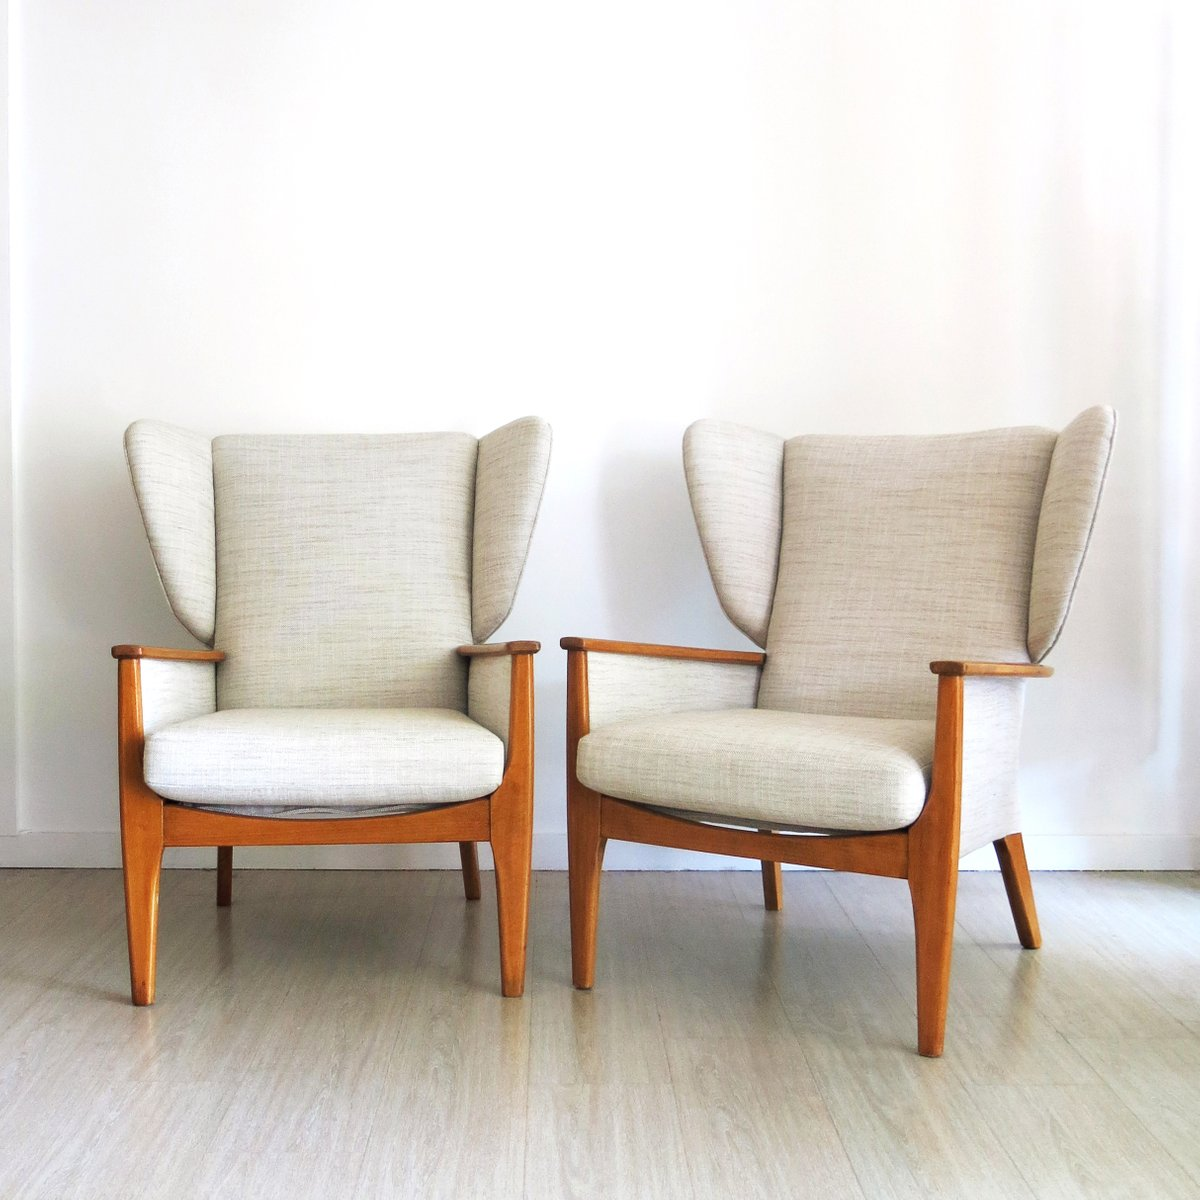 Vintage Wingback Chairs From Parker Knoll, 1960s, Set Of 2